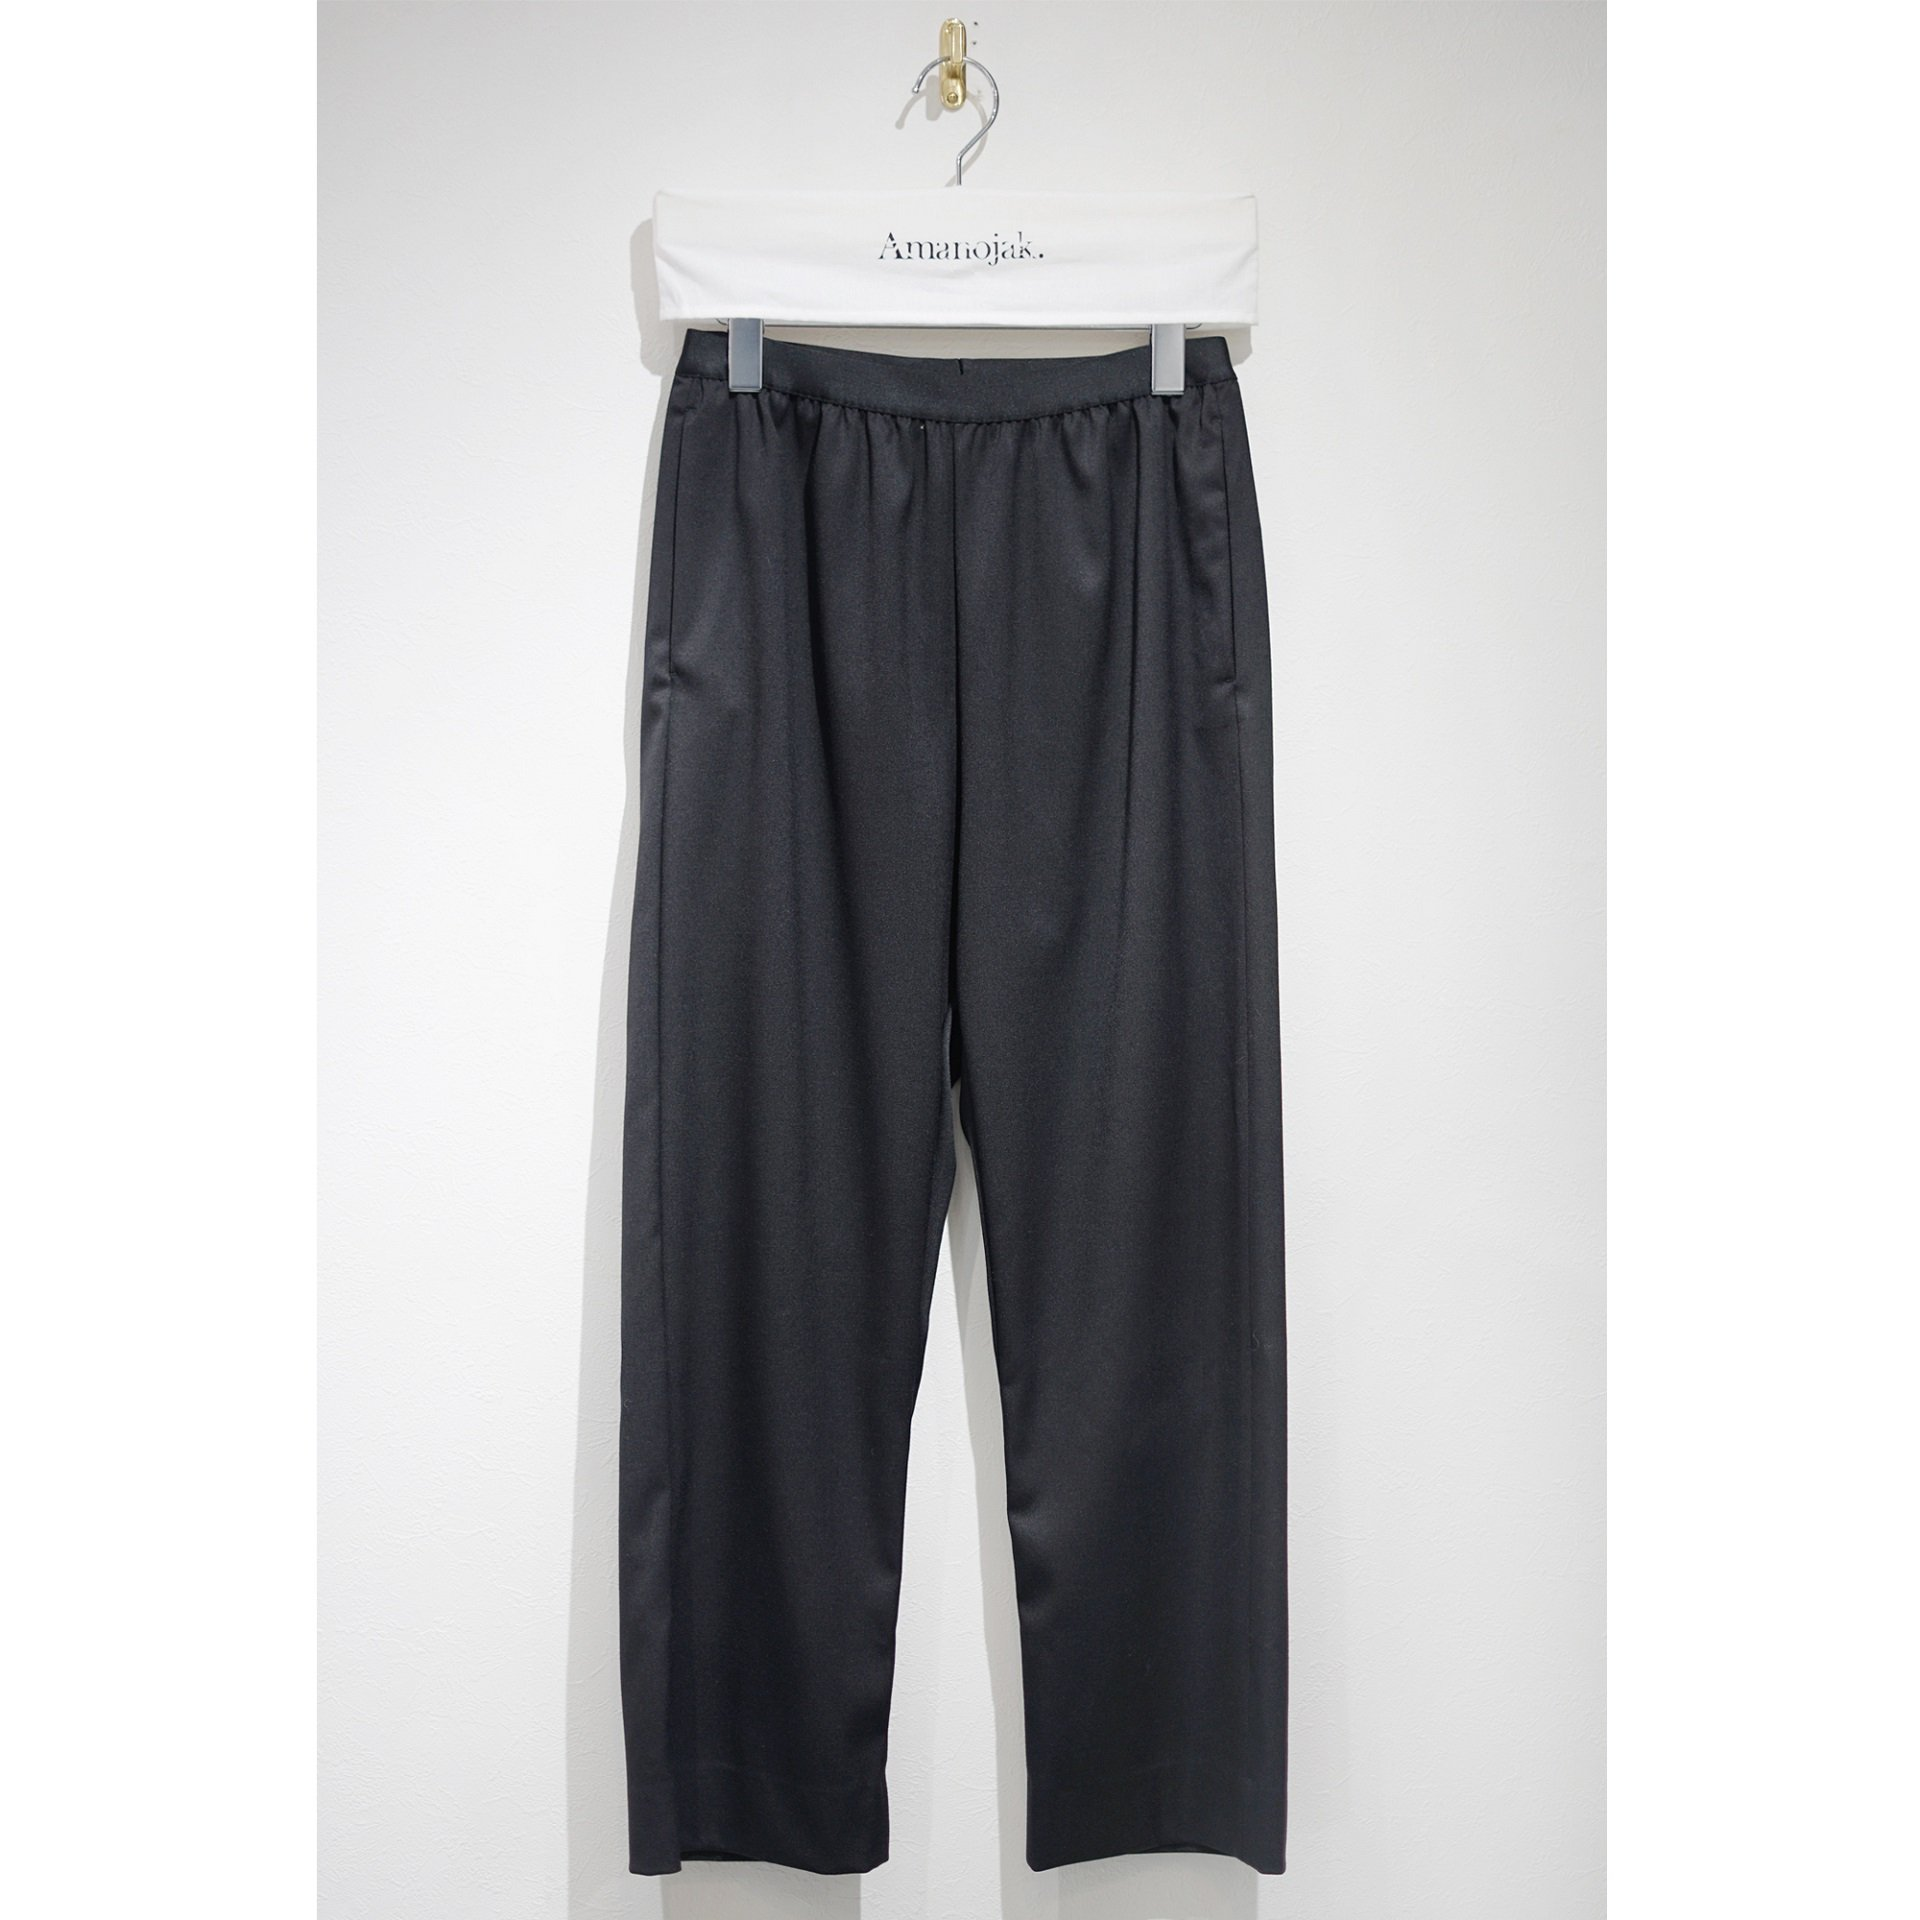 MM6-POLYESTERE/WOOL EASY PANTS<br>(在庫あり)